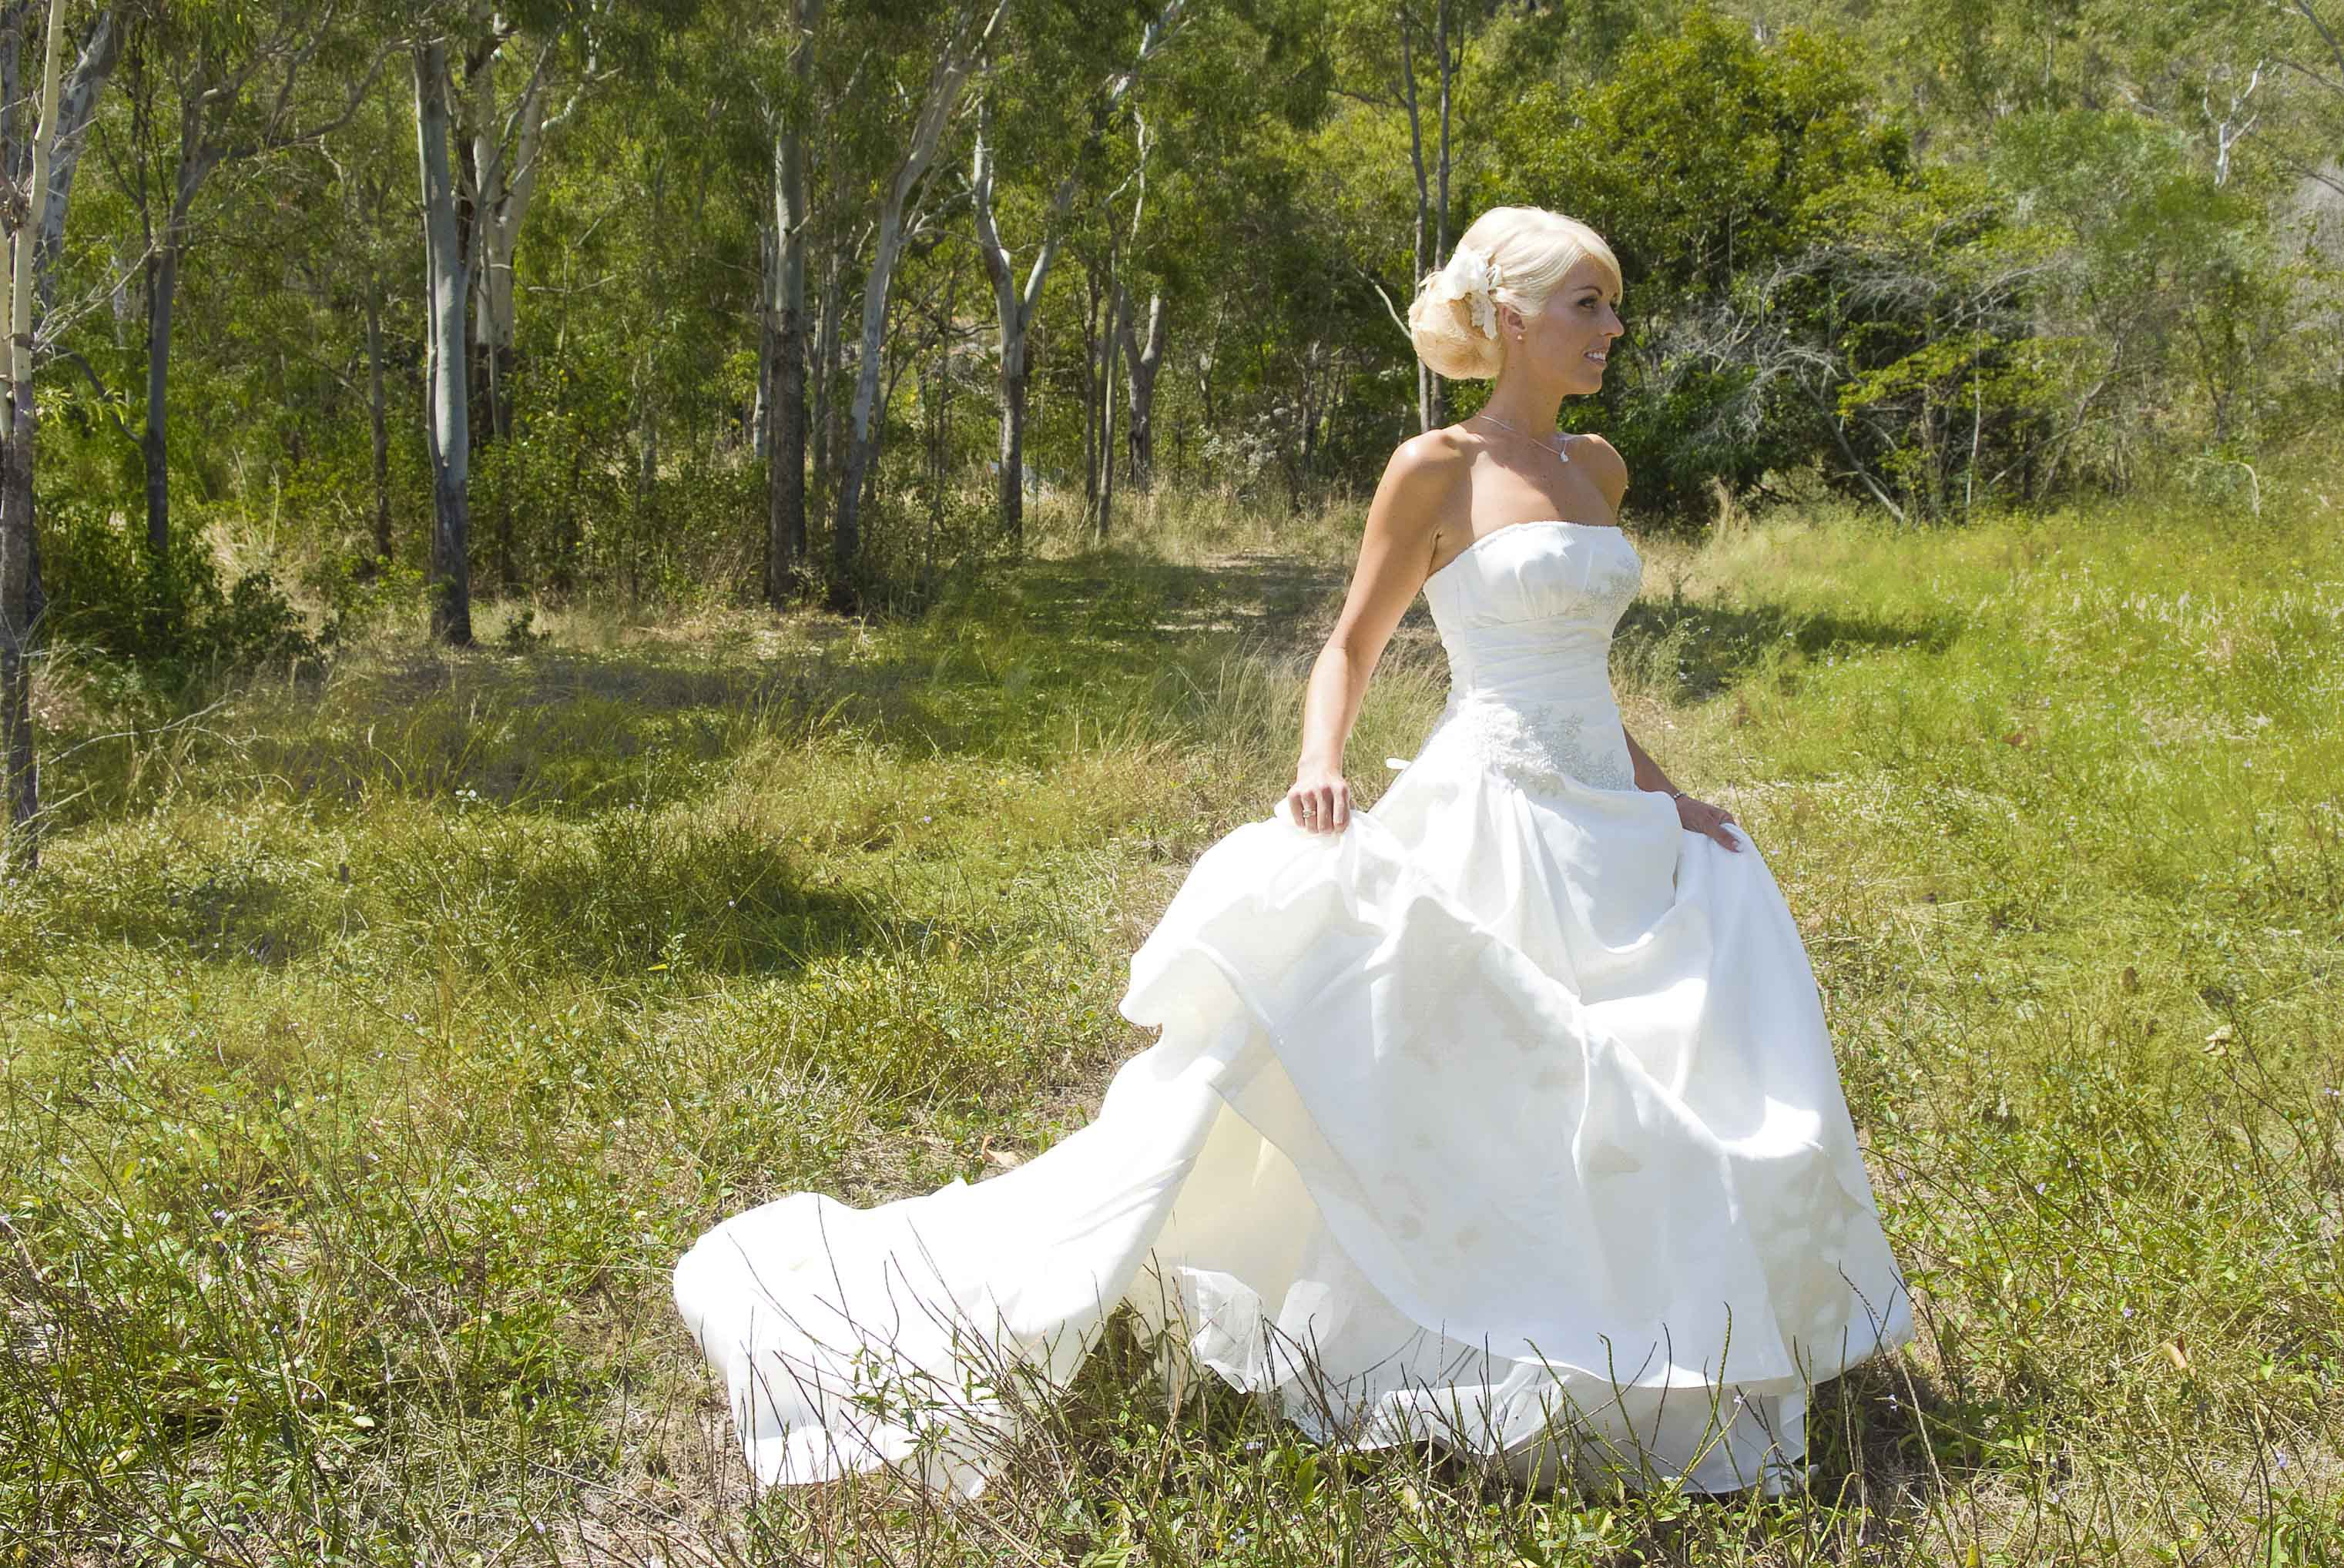 Bride strolling in the park